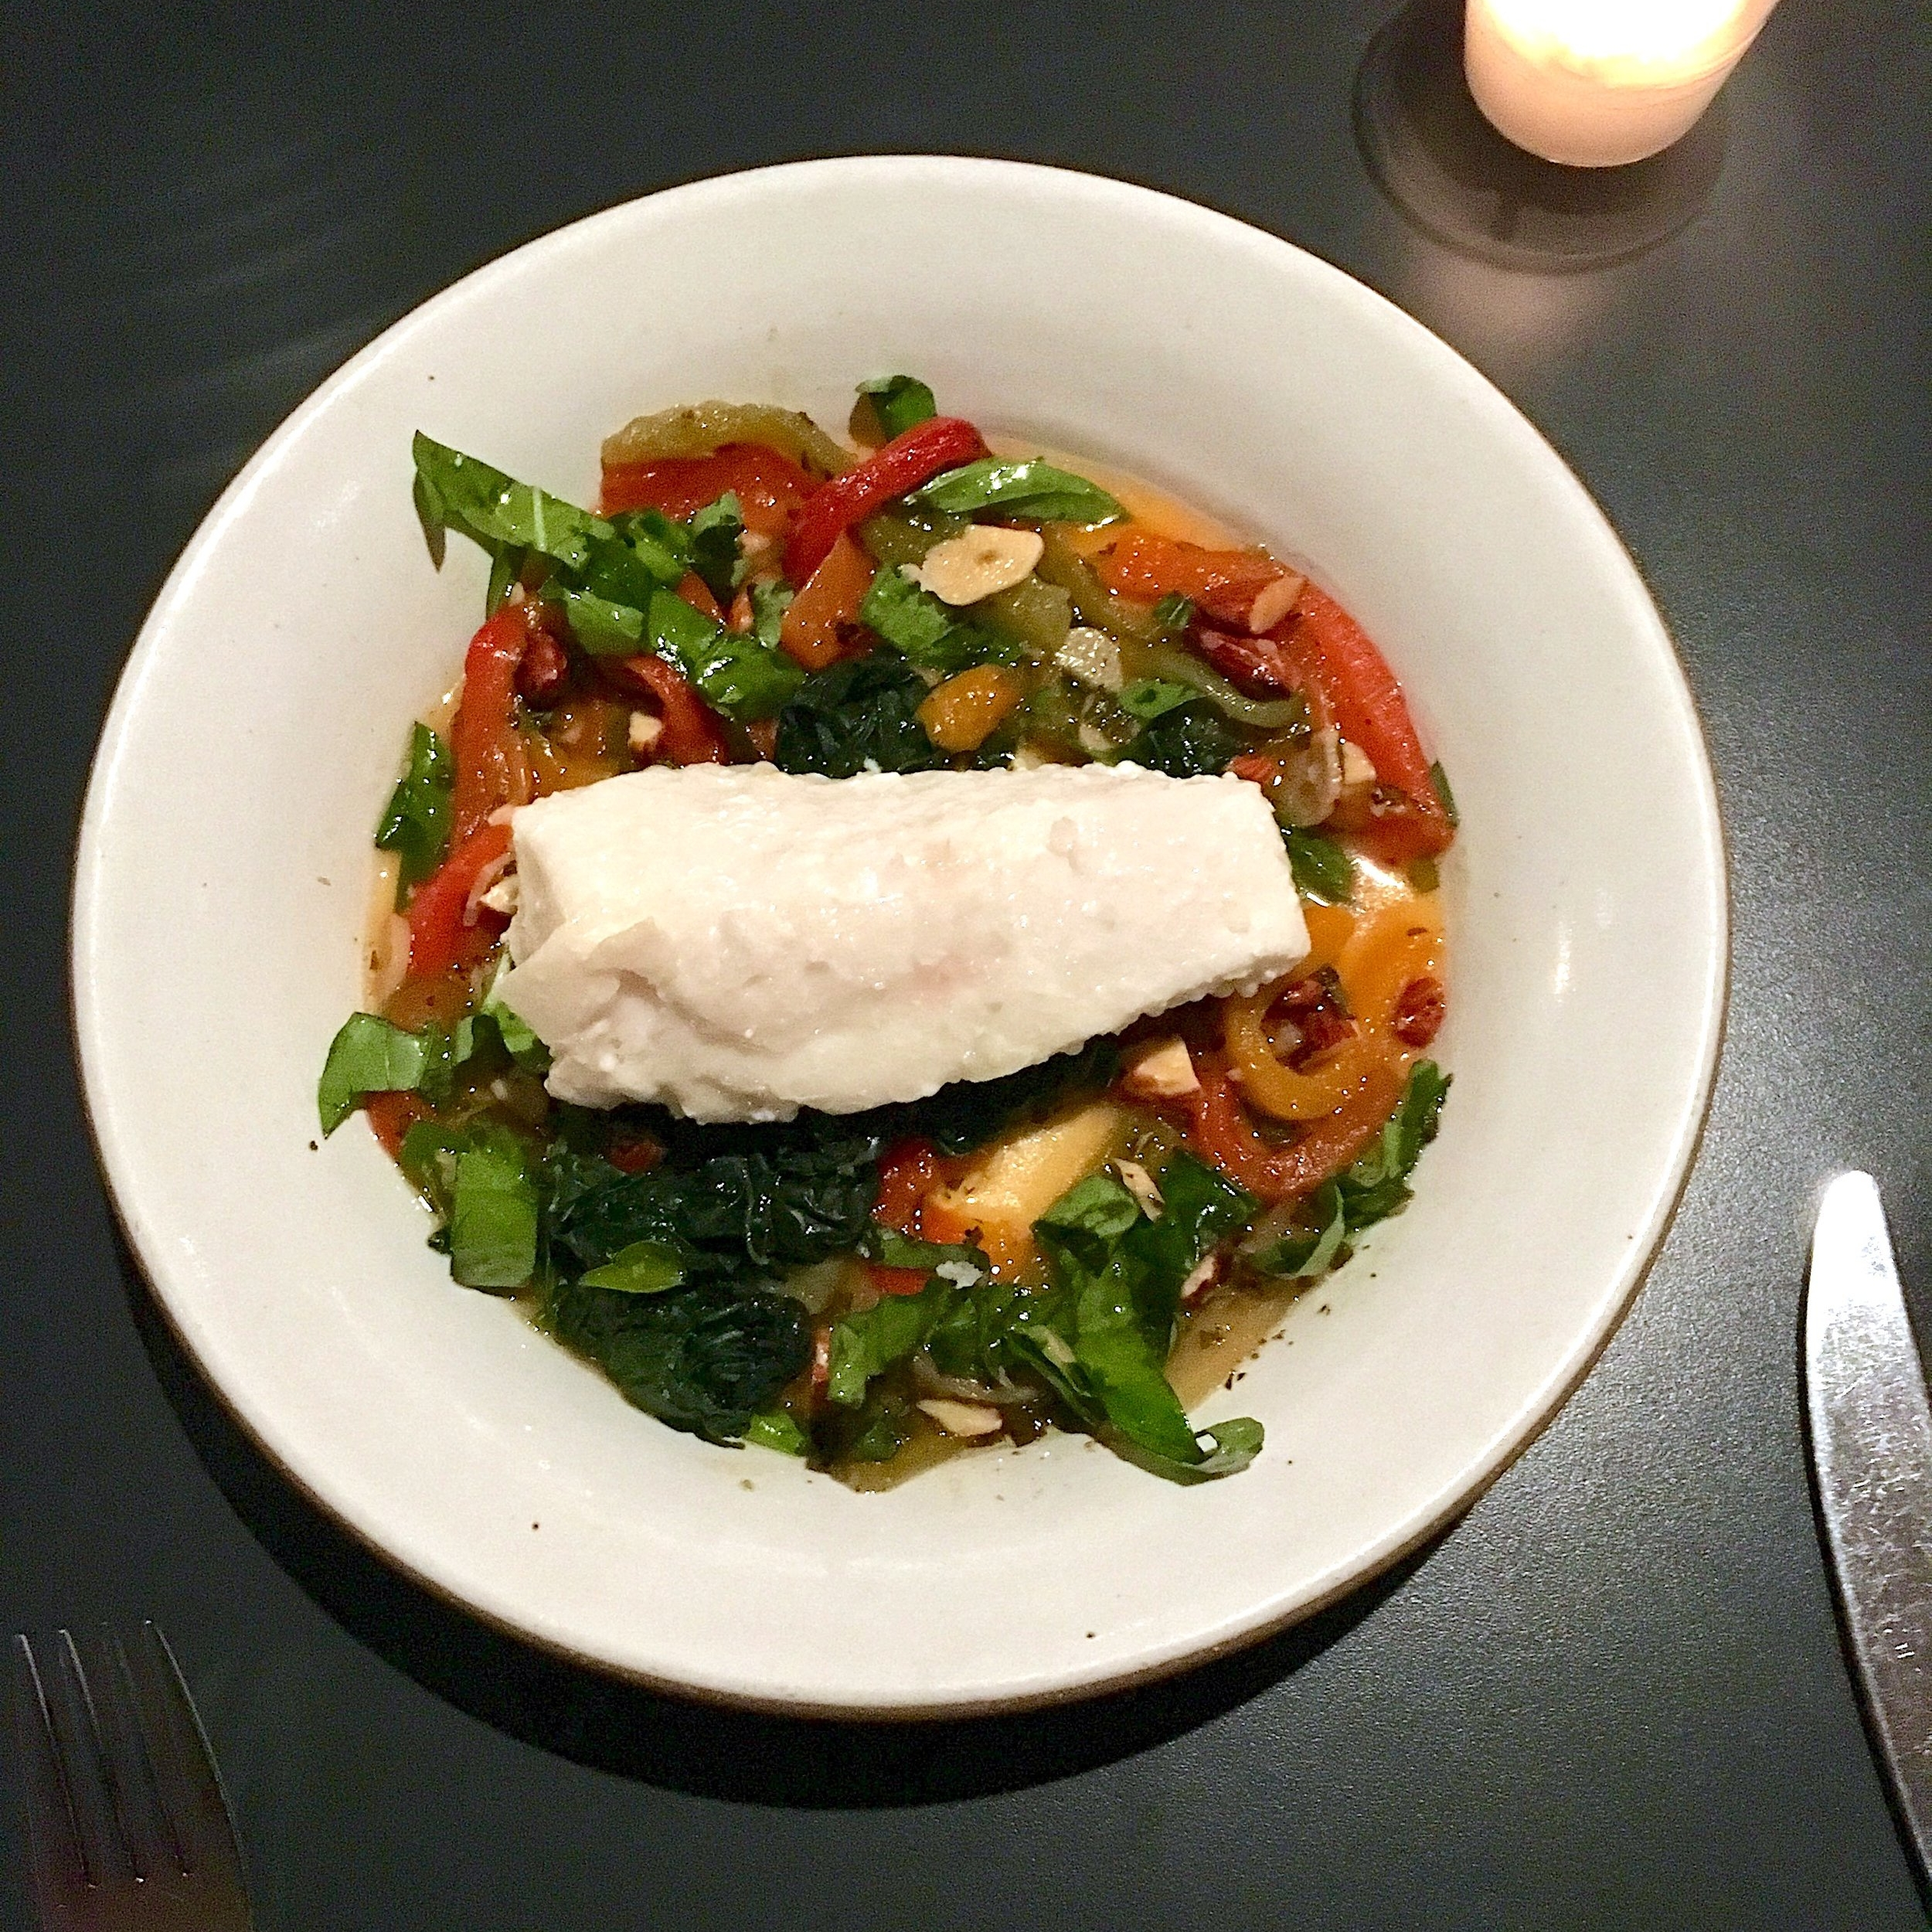 slow cooked halibut, roasted peppers, kale, almonds